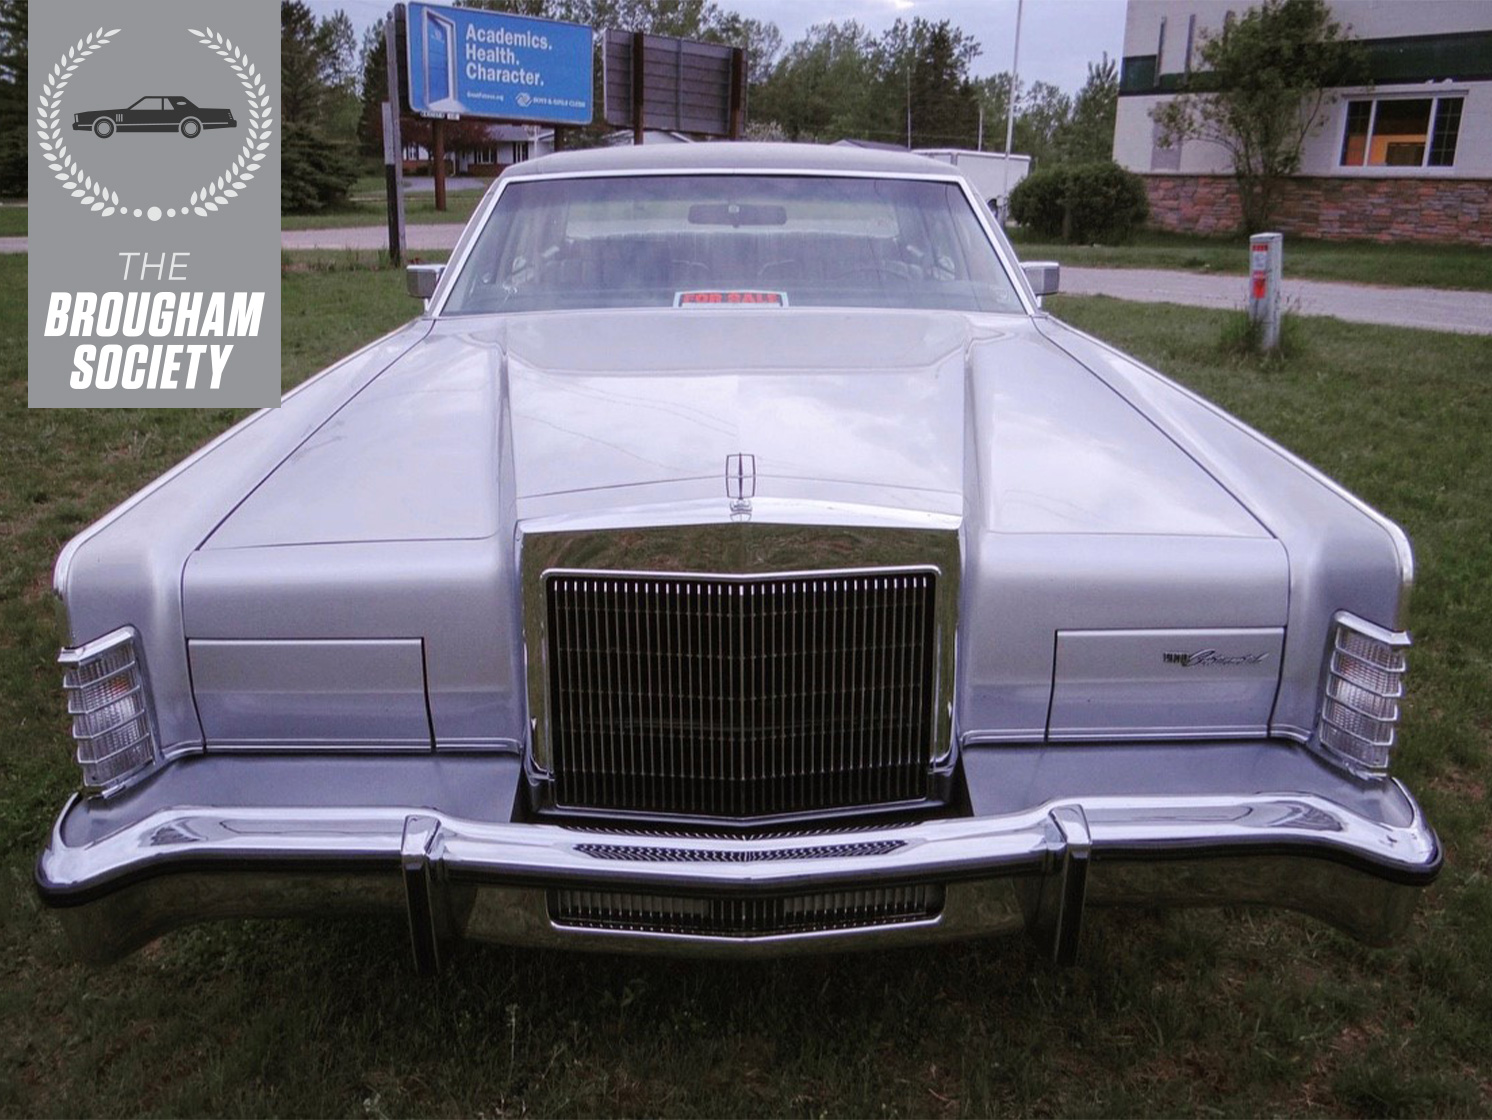 The 1979 Lincoln Continental Williamsburg Edition was rare, precious thumbnail